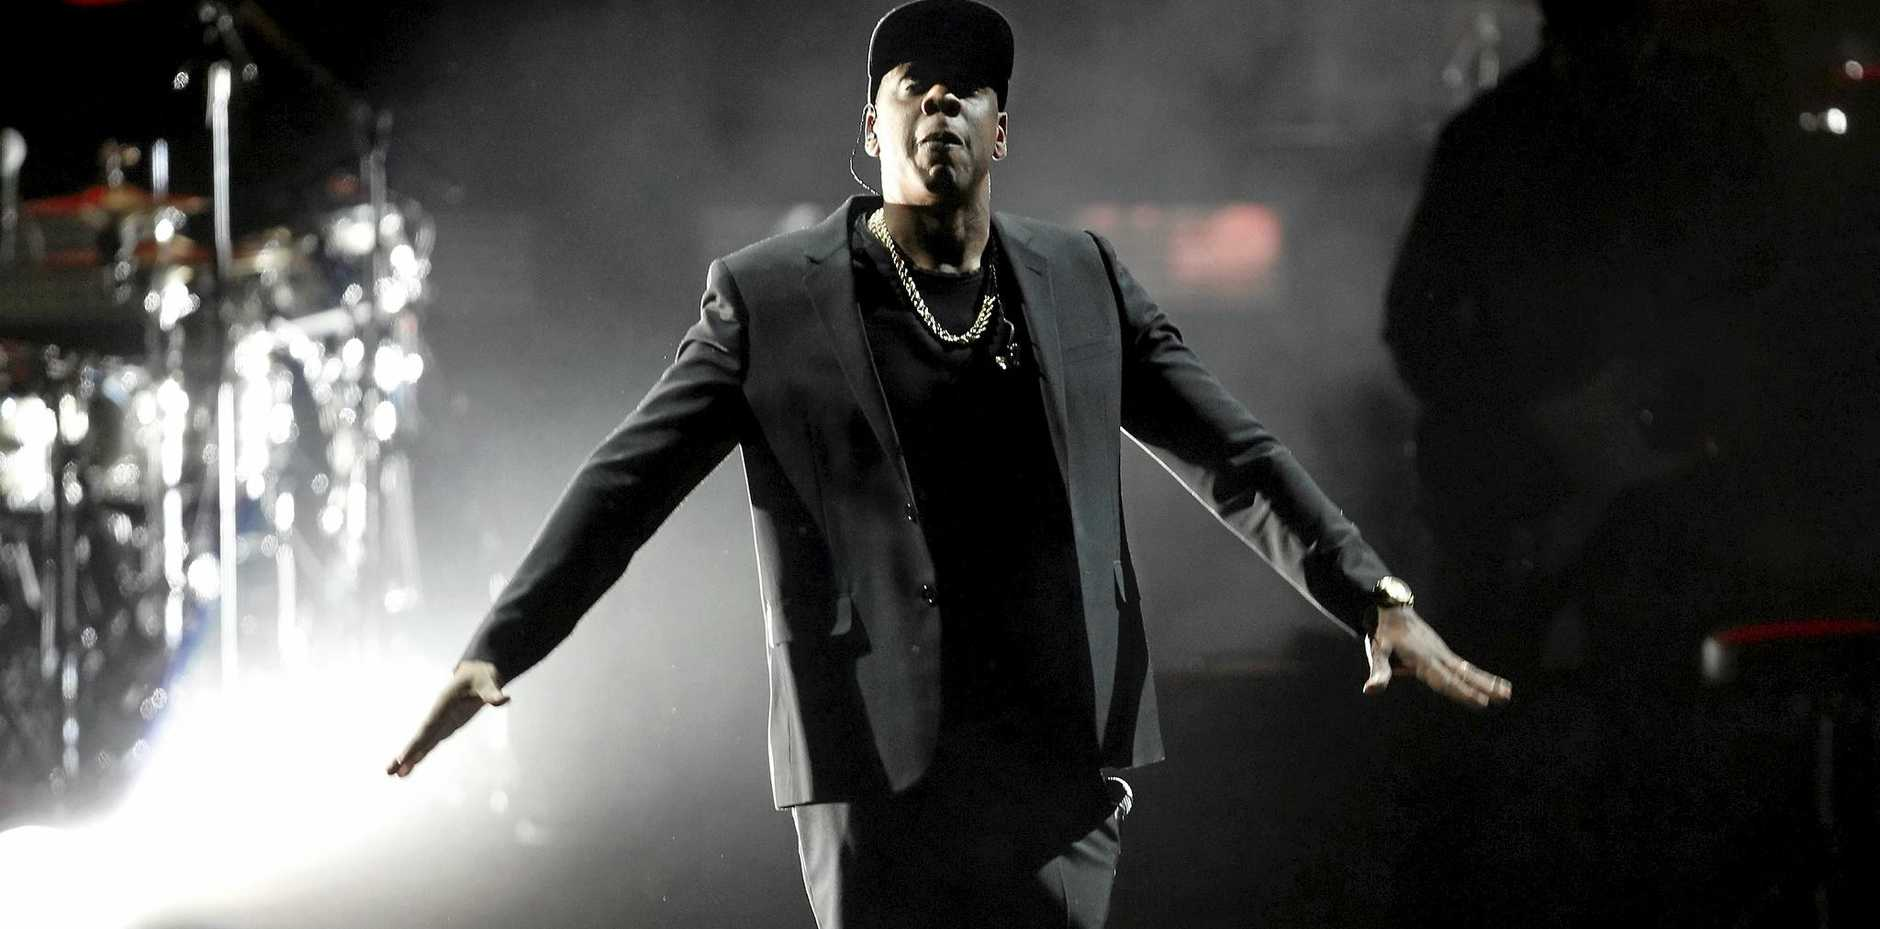 US recording artist Jay Z performs on stage at a campaign event for Democratic presidential candidate Hillary Clinton during the 'Get Out The Vote' concert at the Wolstein Center in Cleveland, Ohio, USA, 04 November 2016. The US presidential election is scheduled for 08 November 2016.  EPA/DAVID MAXWELL